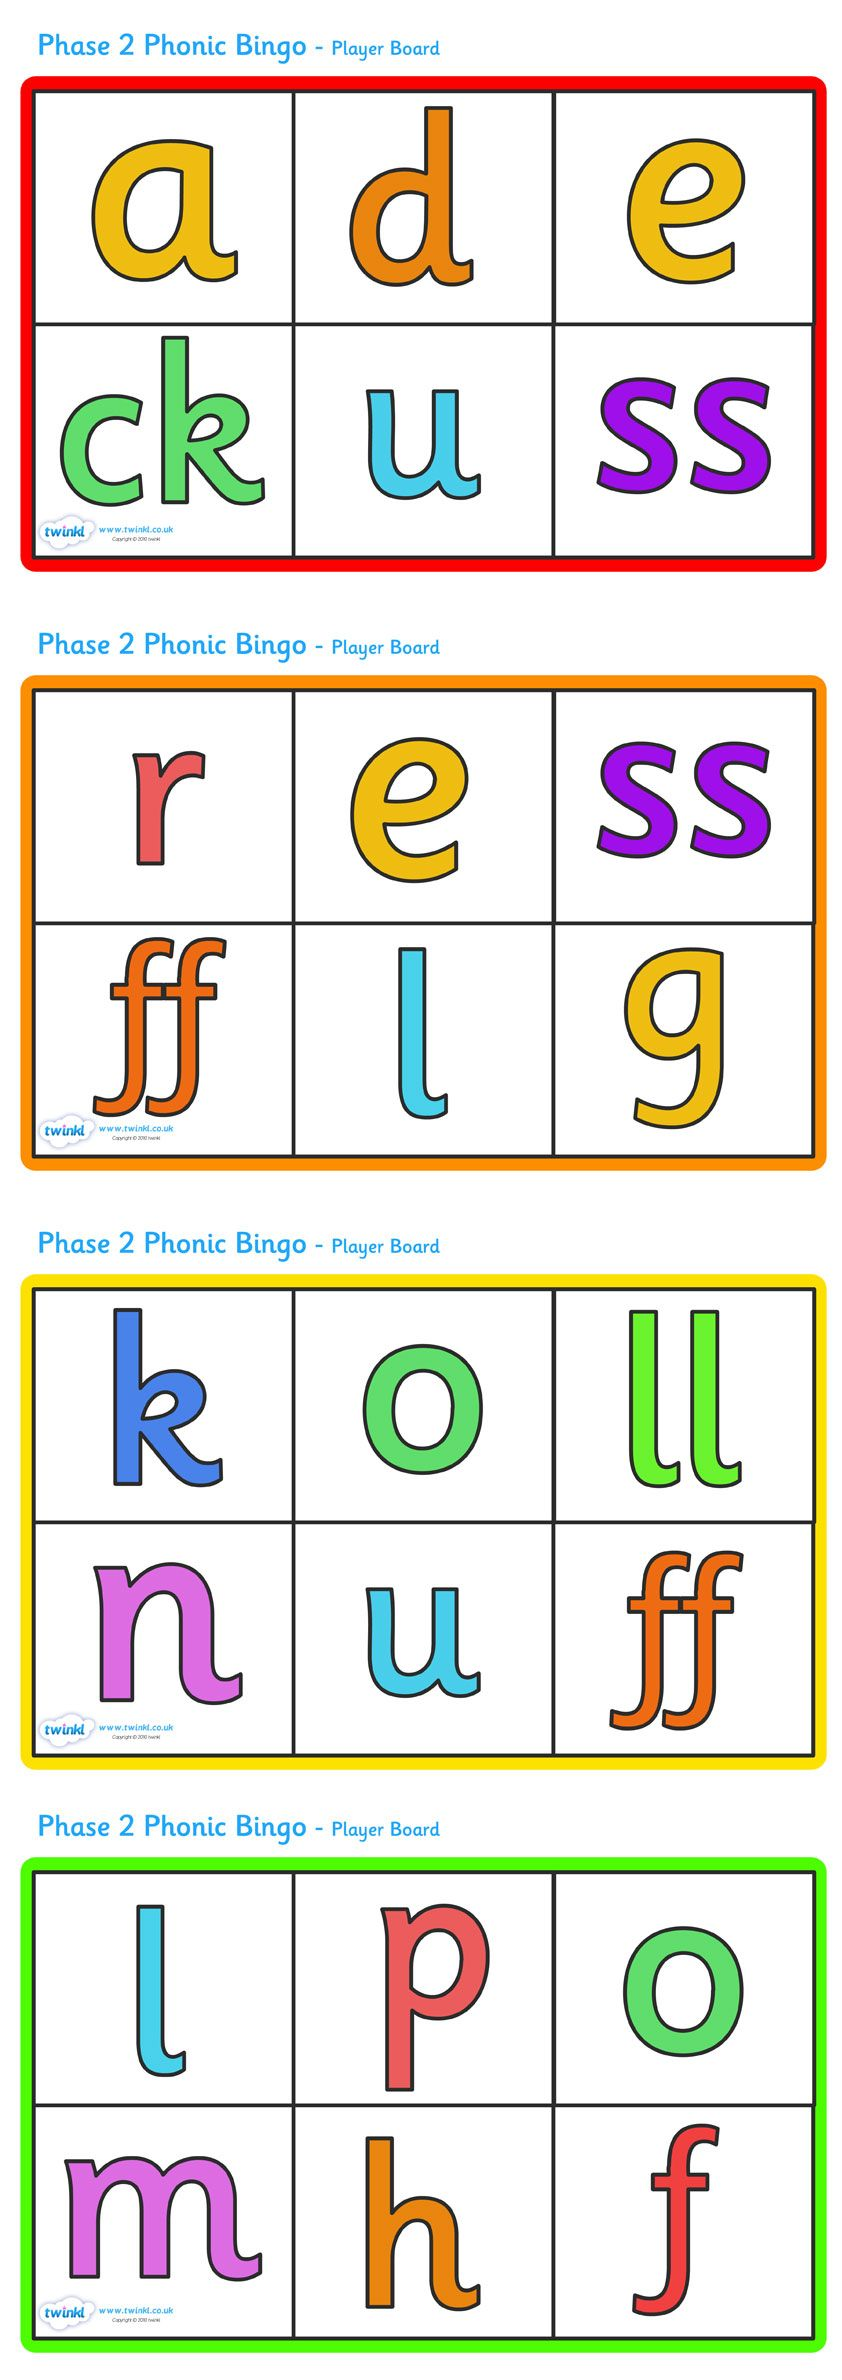 Phase 2 Phonic Bingo and Lotto - Pop over to our site at